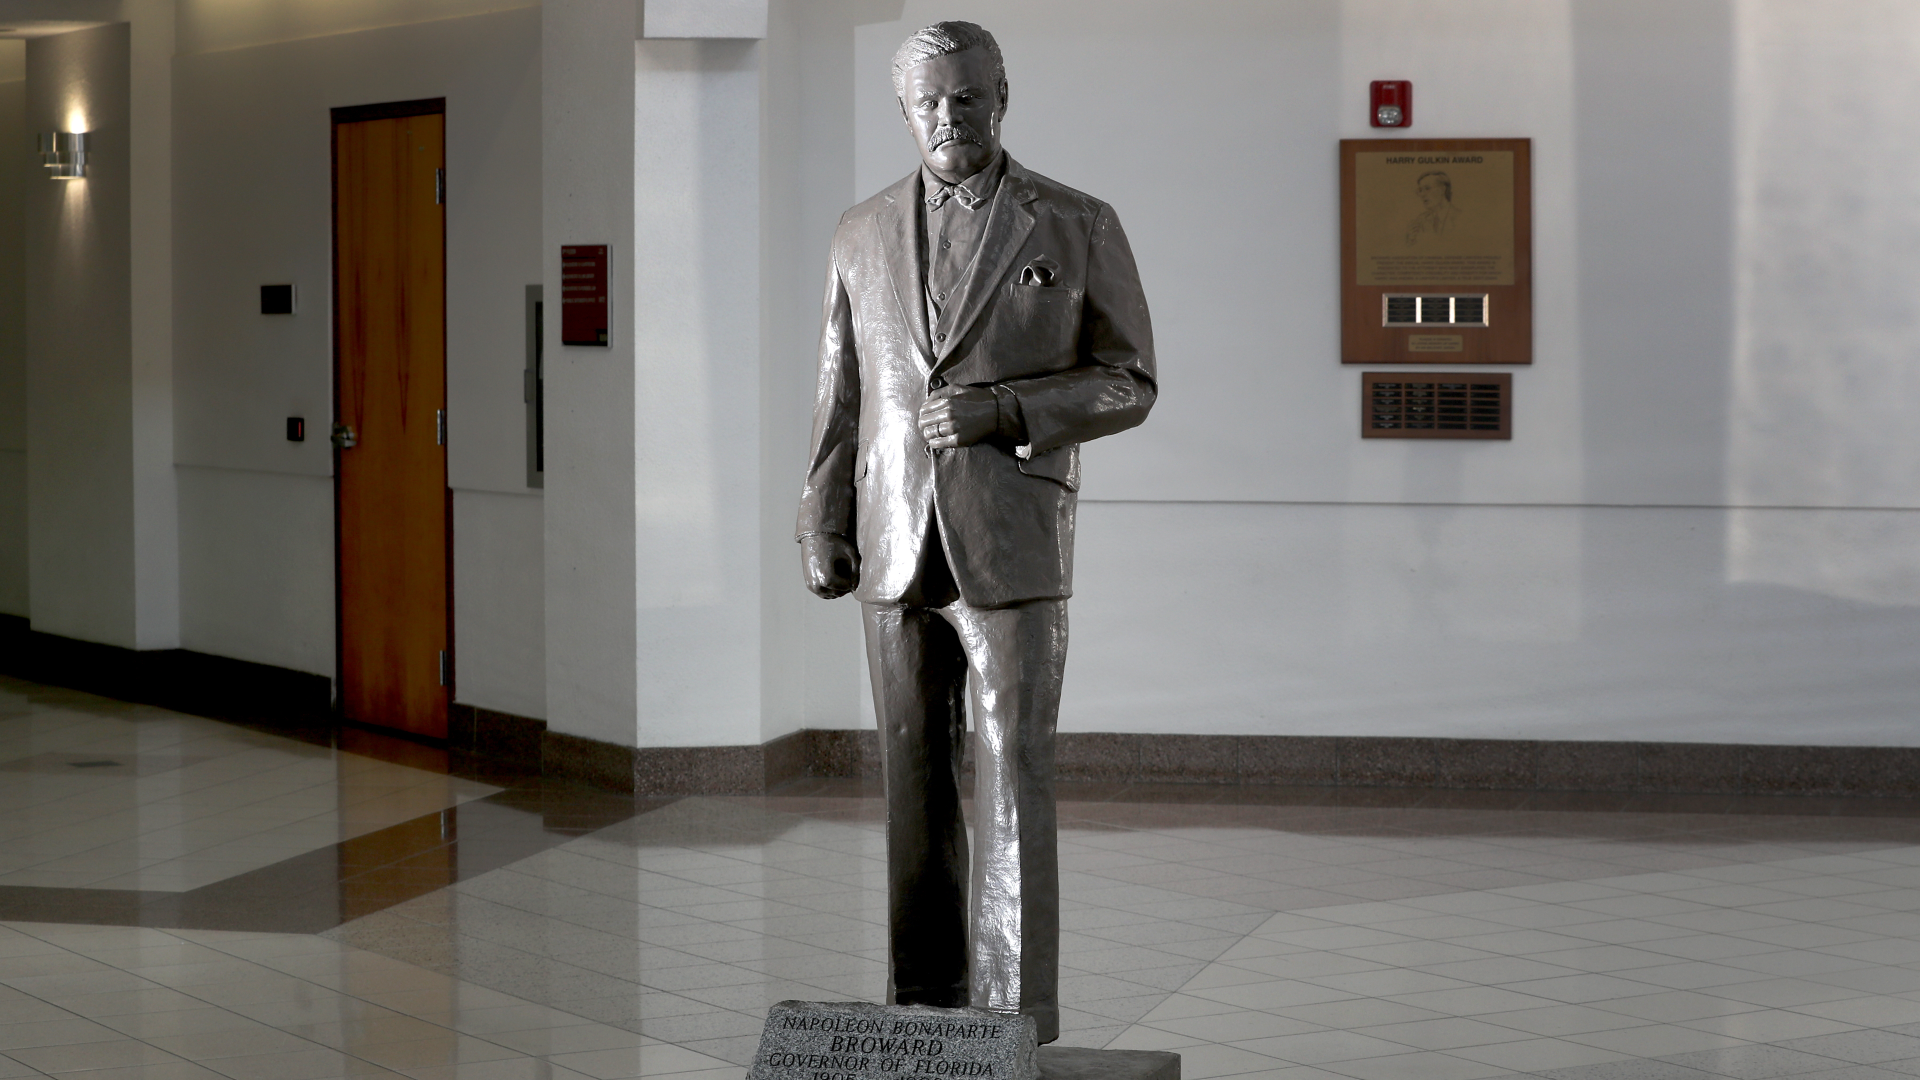 Racist' statue of Broward County's namesake to be removed from